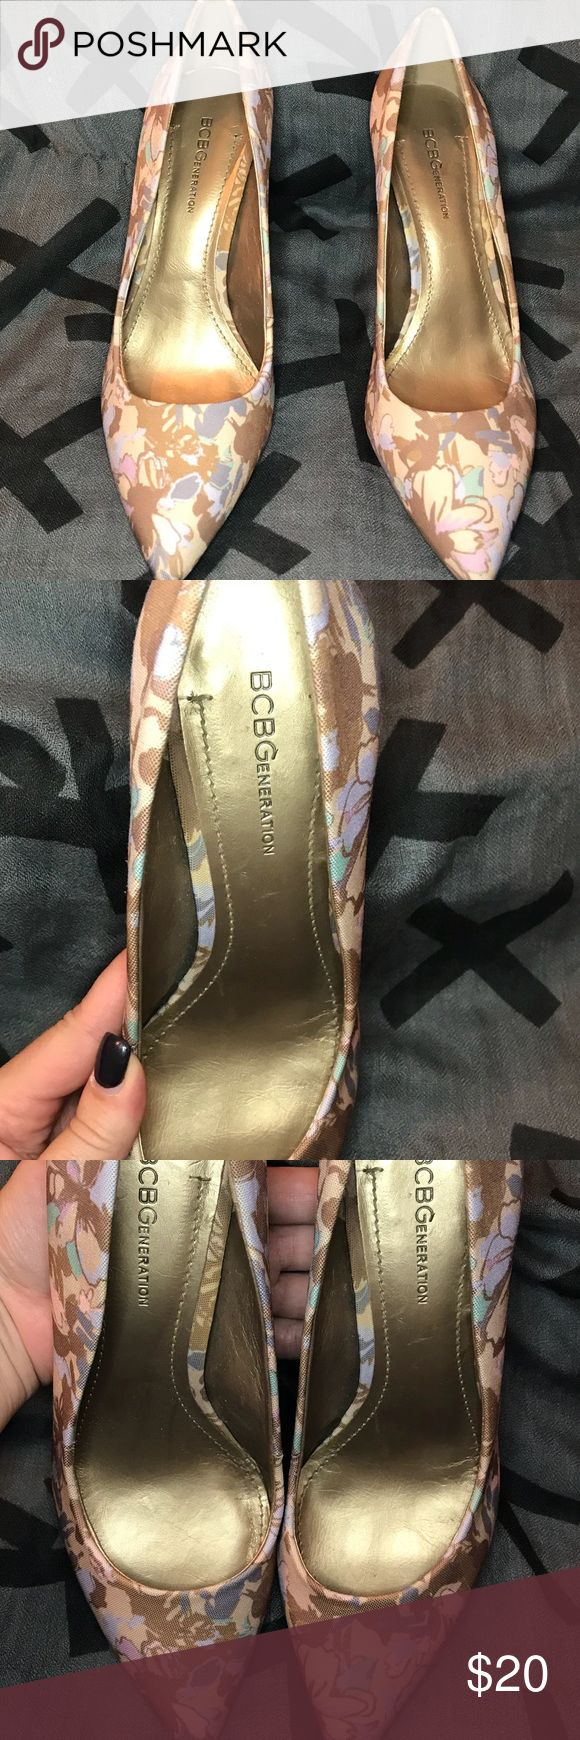 """BCBG pumps These shoes are very gently worn and show very little signs of wear. They are a very pretty floral design with a low heel. 3"""". Can take additional pictures if requested. BCBG Shoes Heels"""